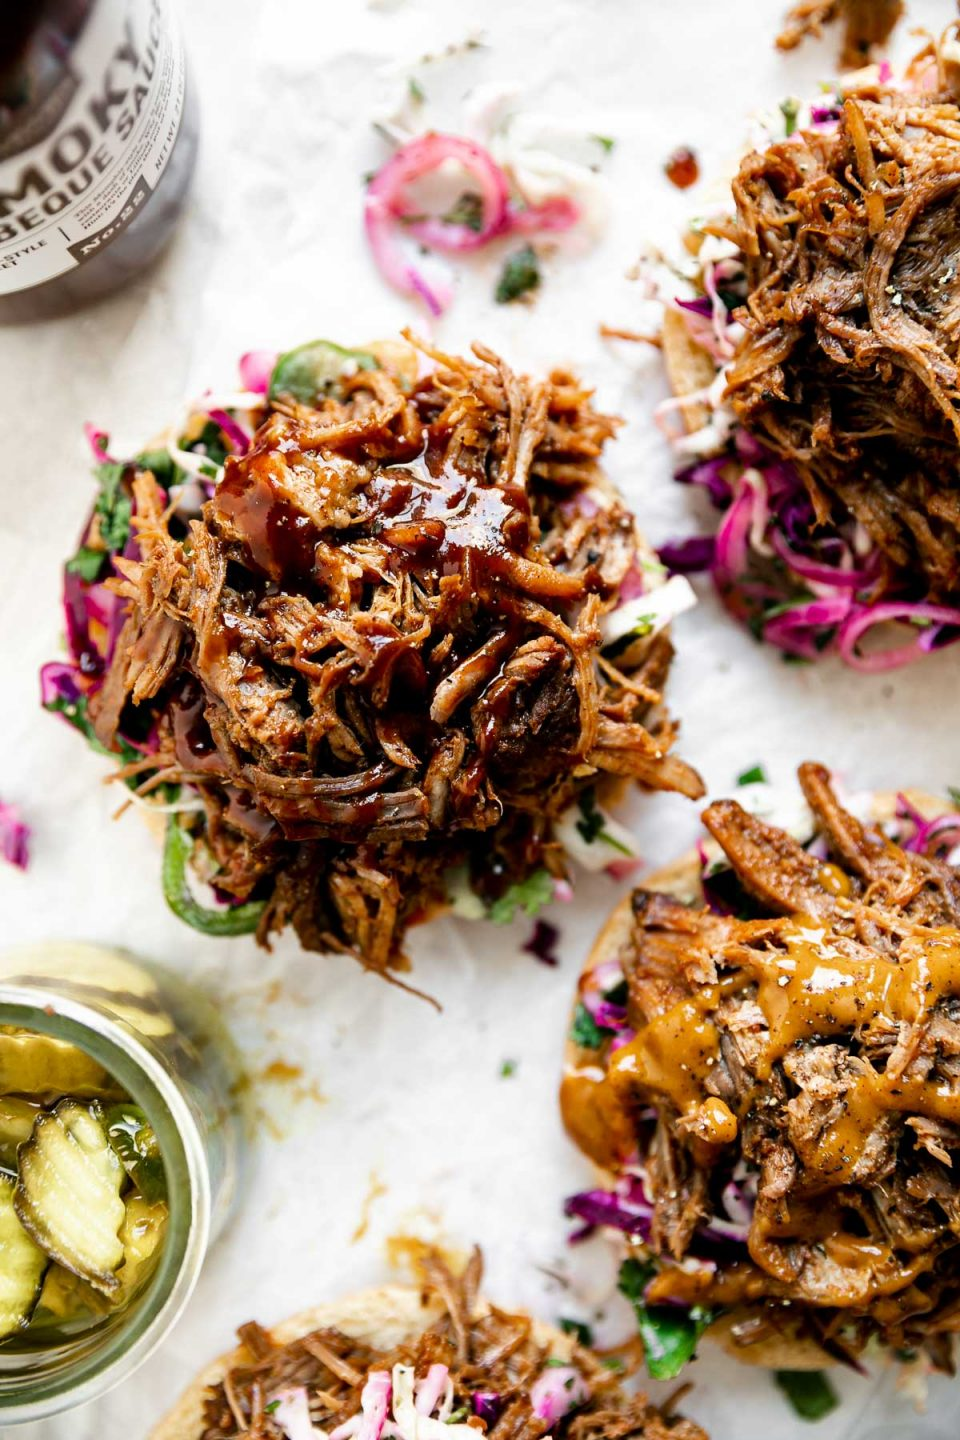 Easy pulled pork shown on 4 open face sandwiches. The pork sits atop buns & slaw on a white surface, alongside a jar of pickles & BBQ sauce.